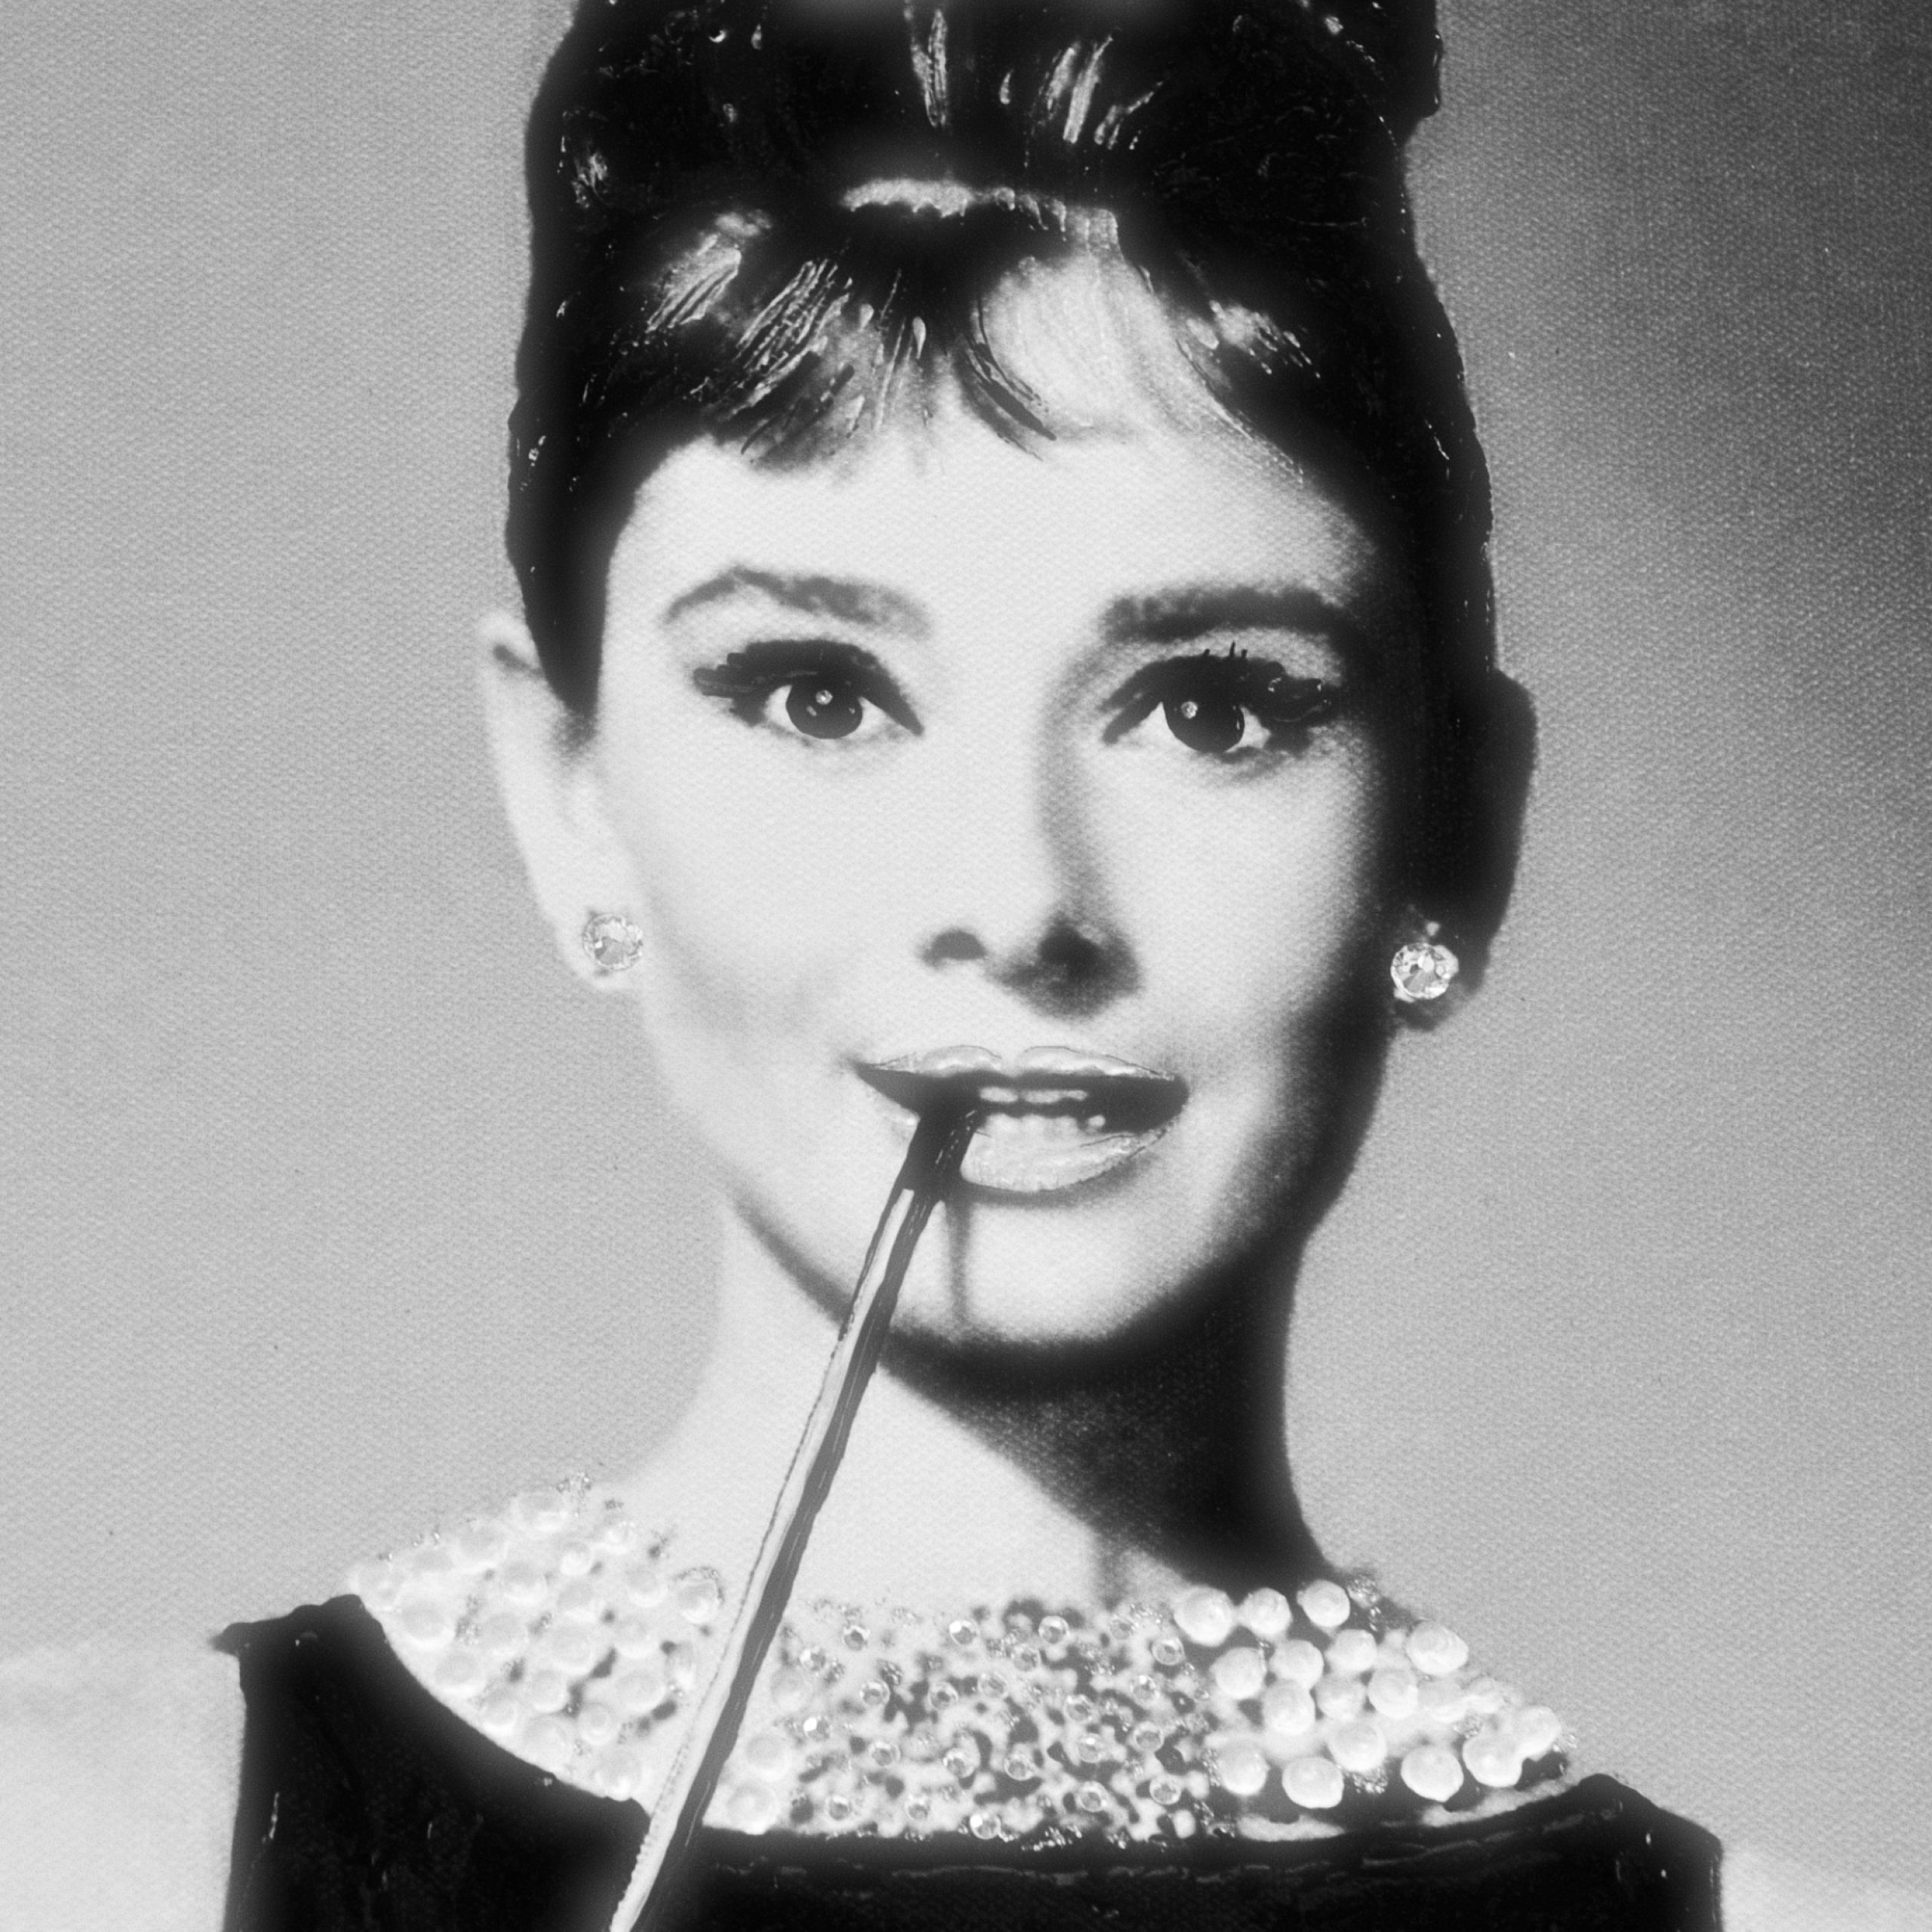 Fashionable Audrey Hepburn Inspired Pixie Haircuts Throughout 7 Ways To Make Audrey Hepburn Your Fashion Style Icon On A (View 11 of 20)